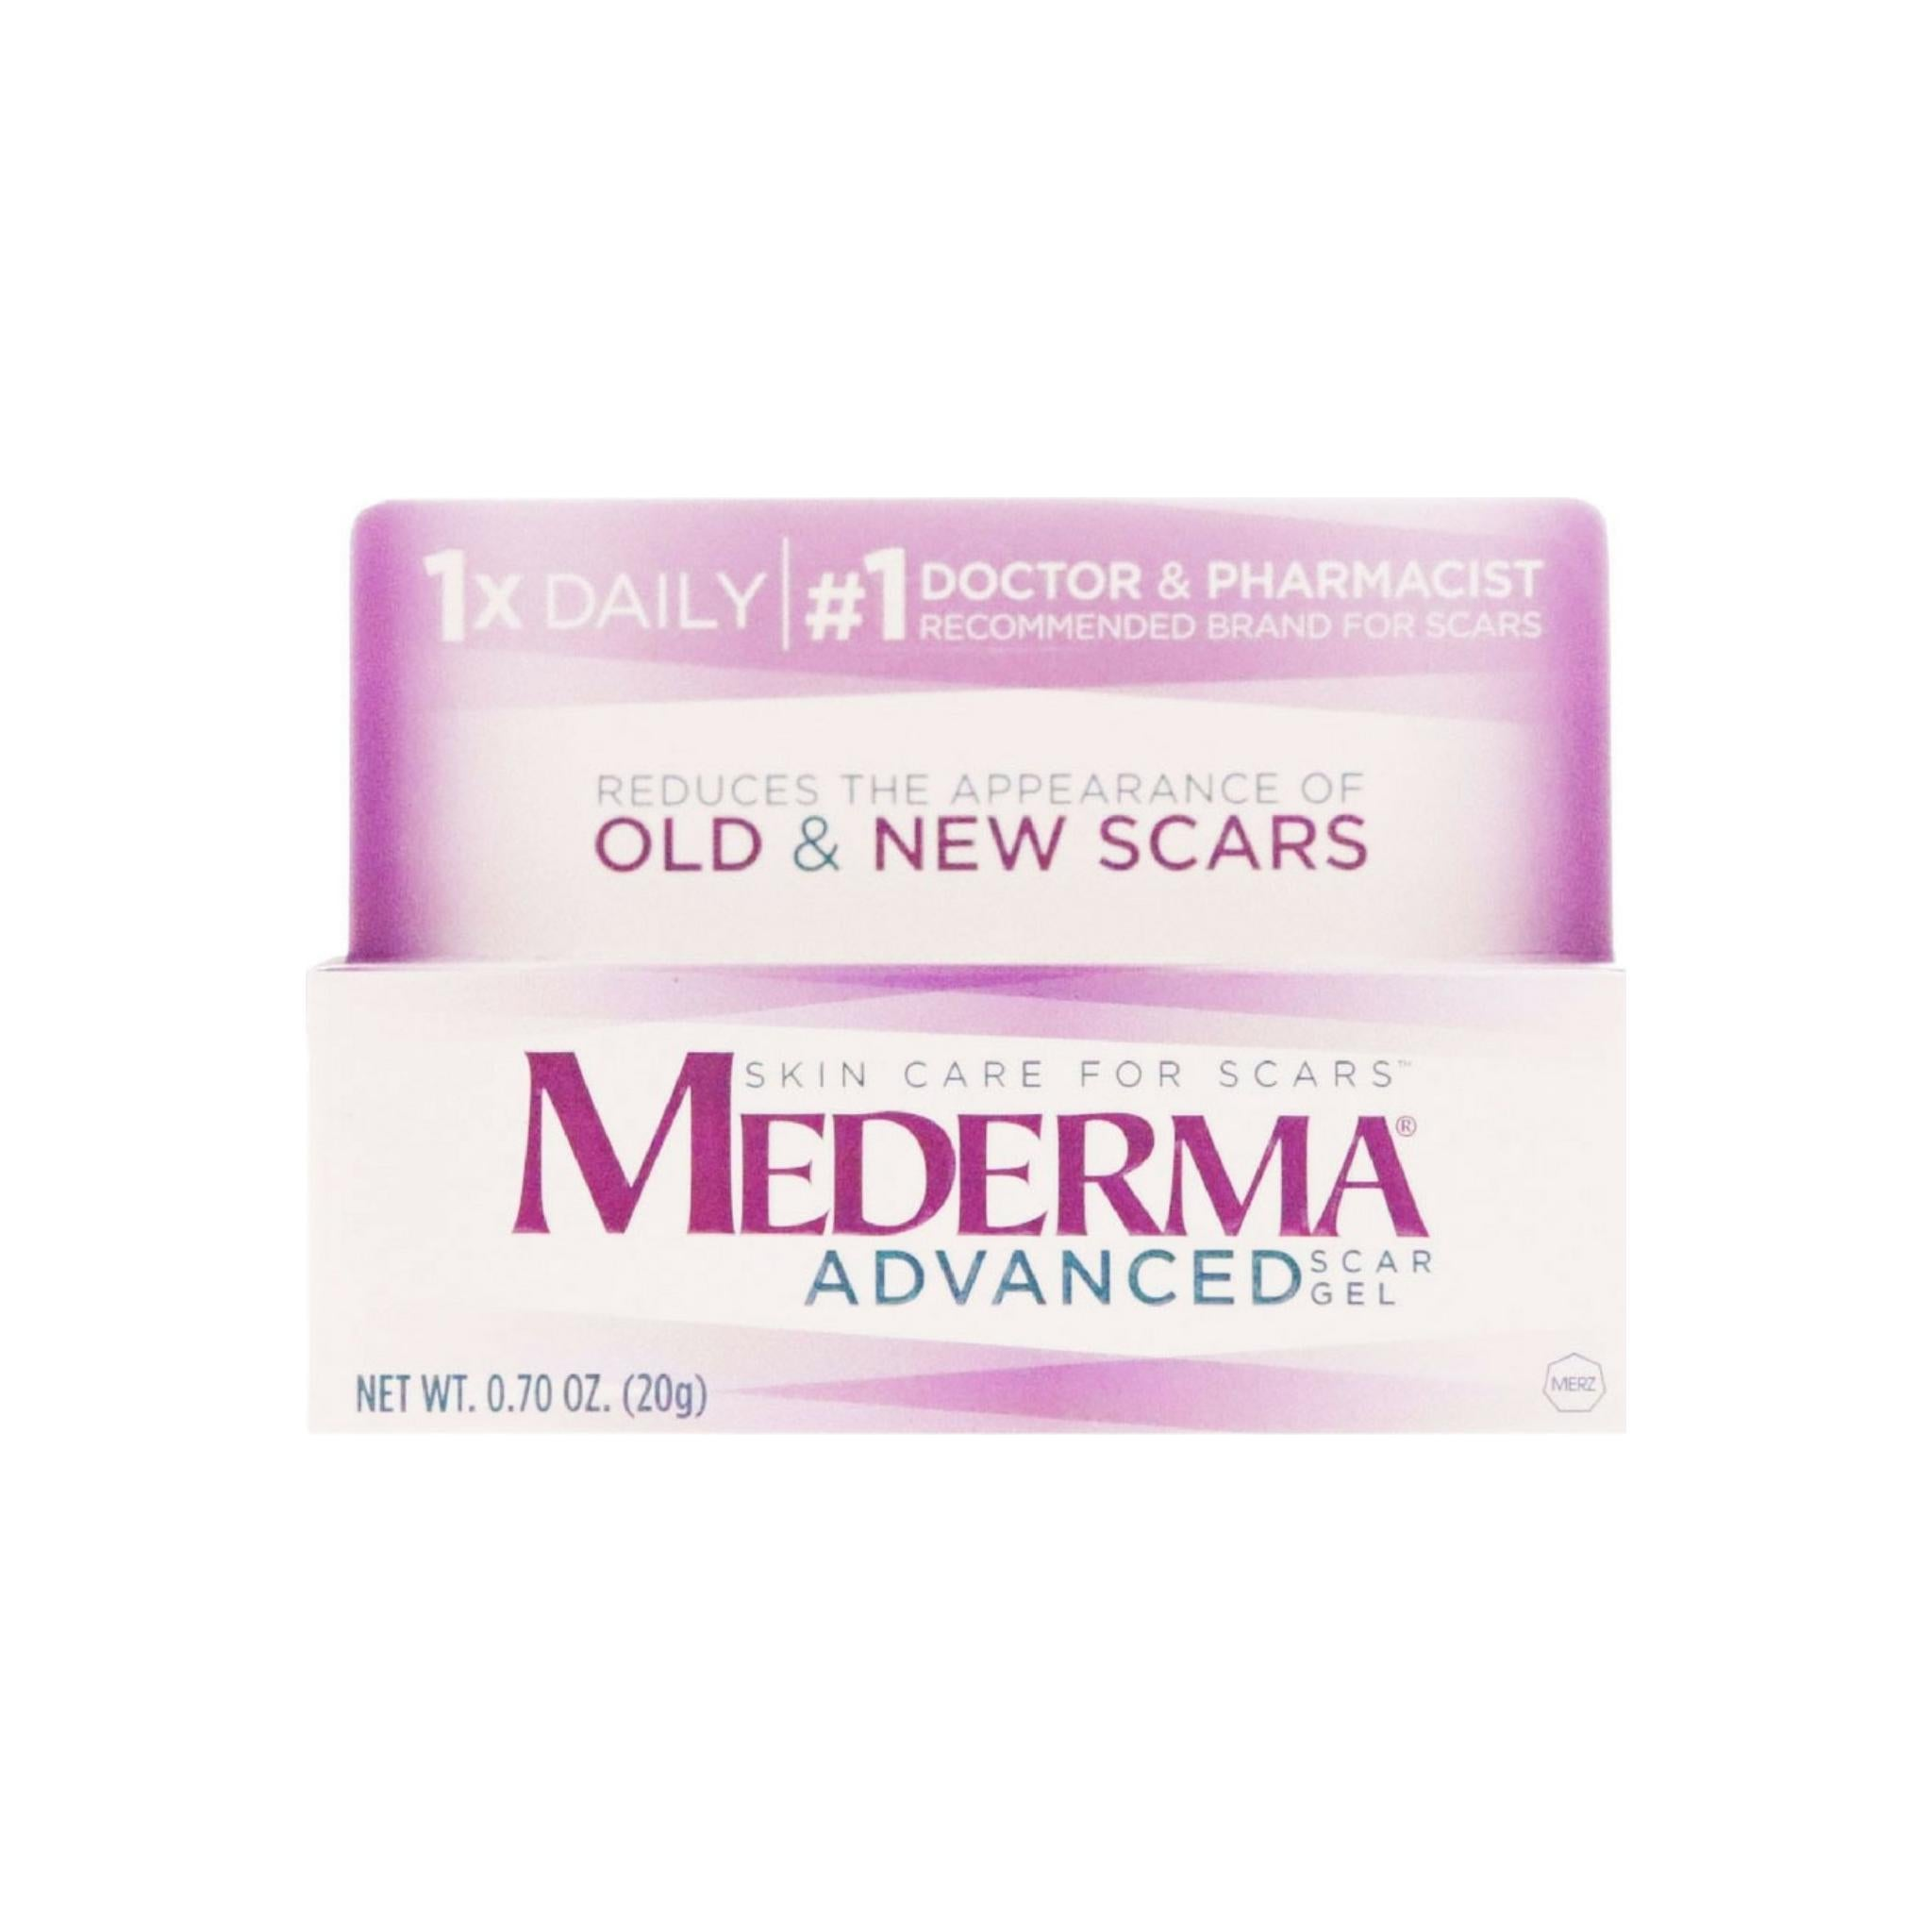 Mederma Advanced Skin Care Gel 20 G Pharmapacks